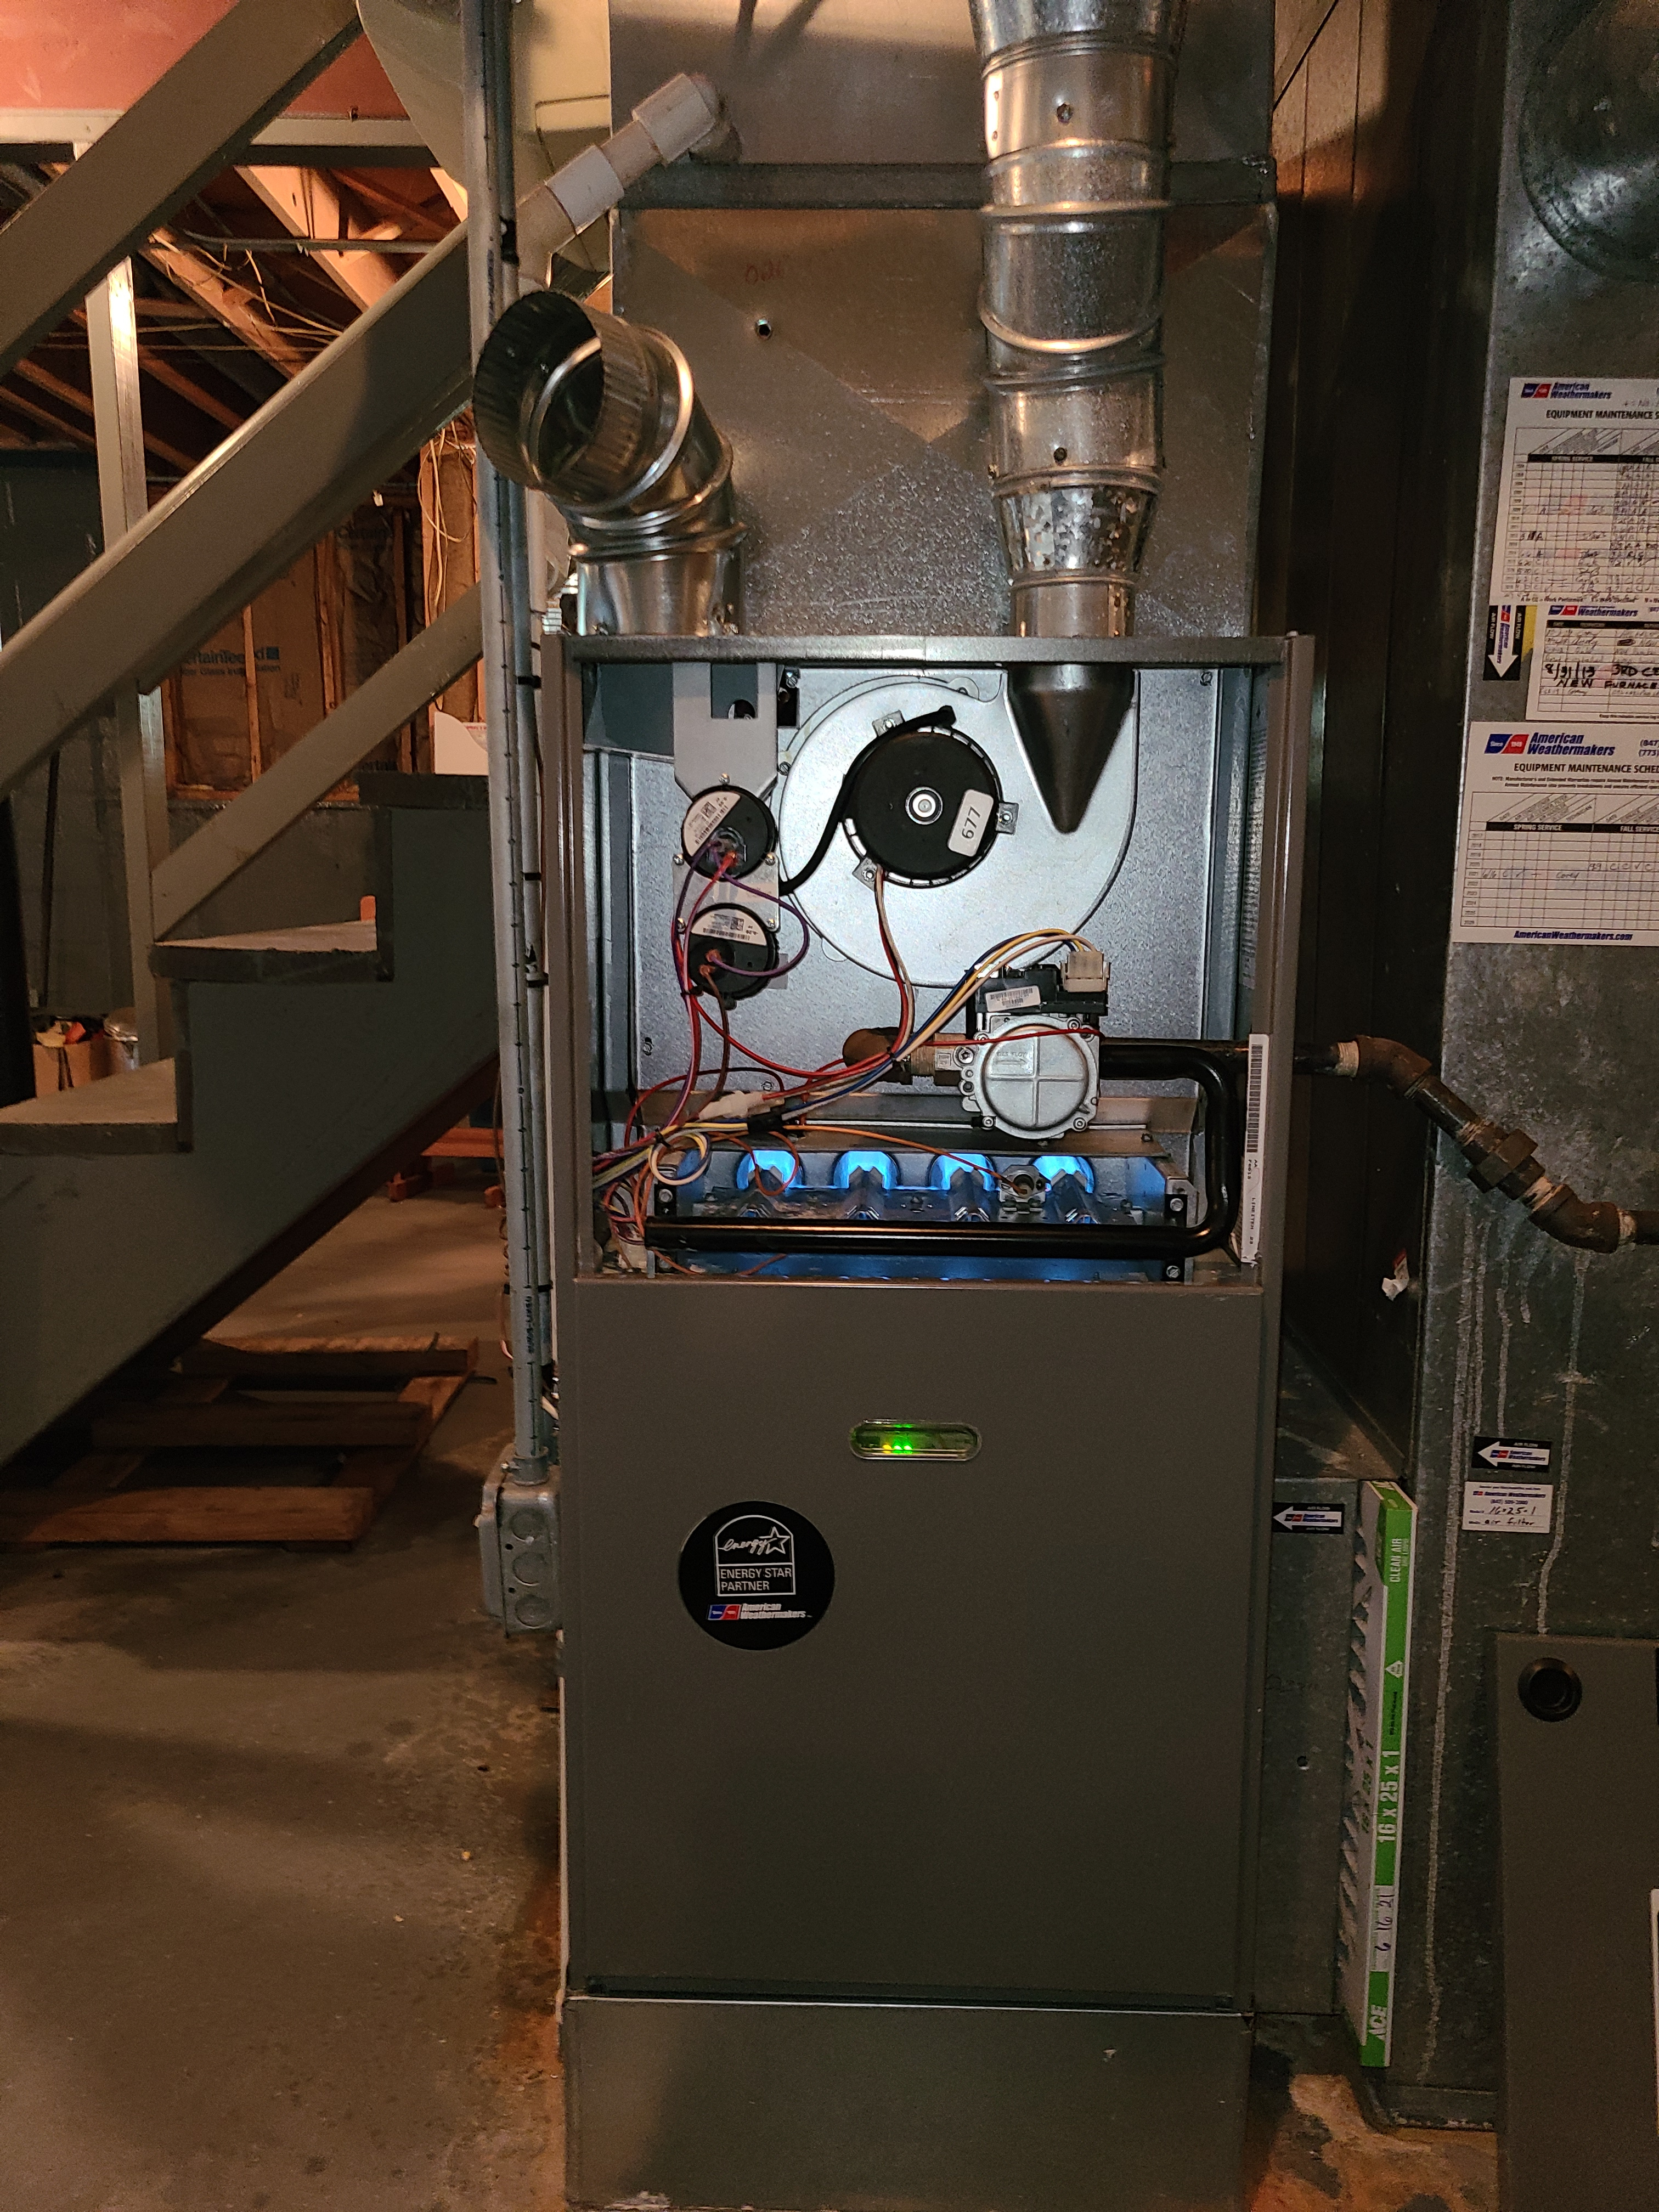 Ruud furnace Aprilaire humidifier fall clean and check. System tuned up and ready for winter.